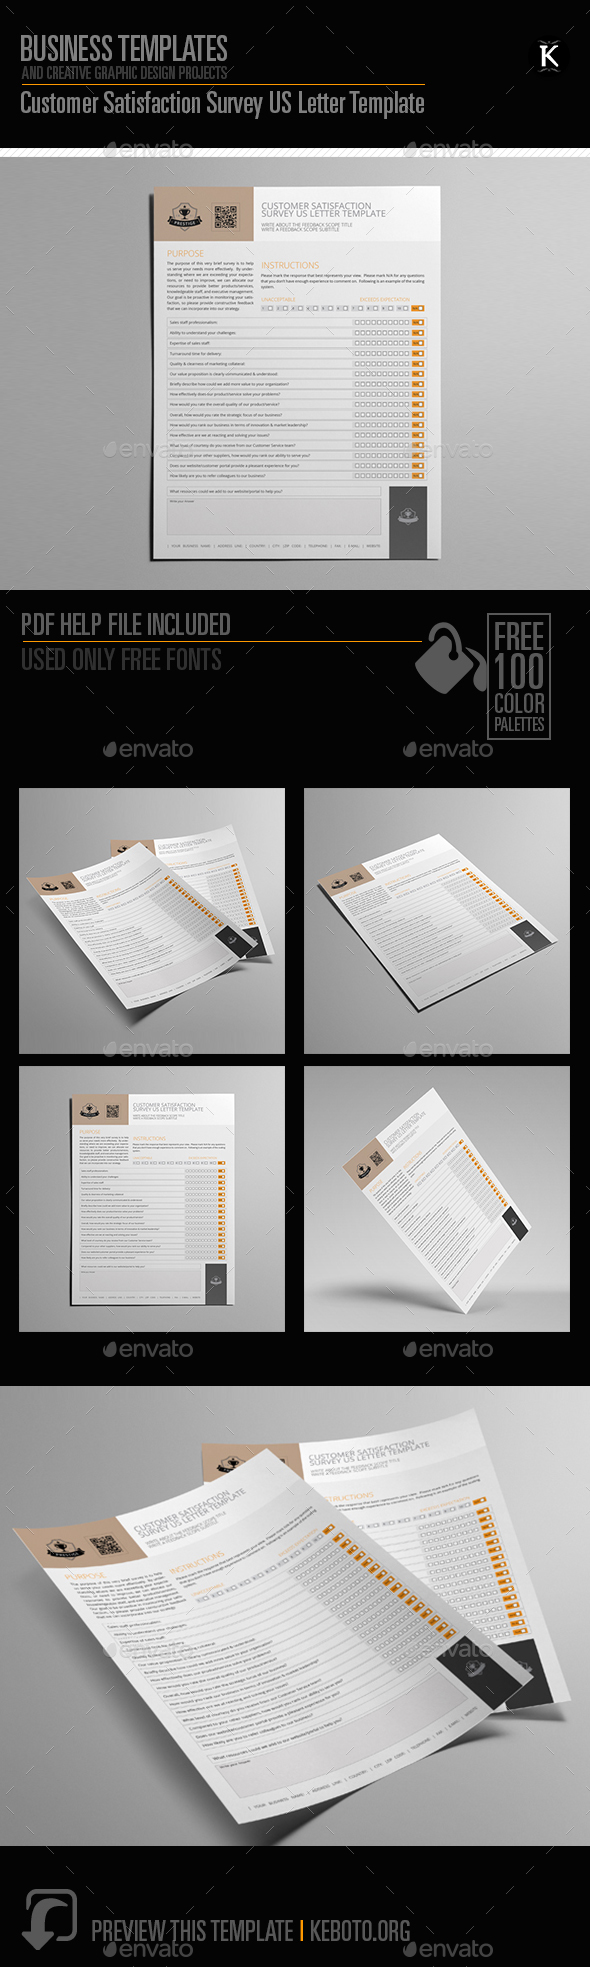 Customer Satisfaction Survey US Letter Template - Miscellaneous Print Templates